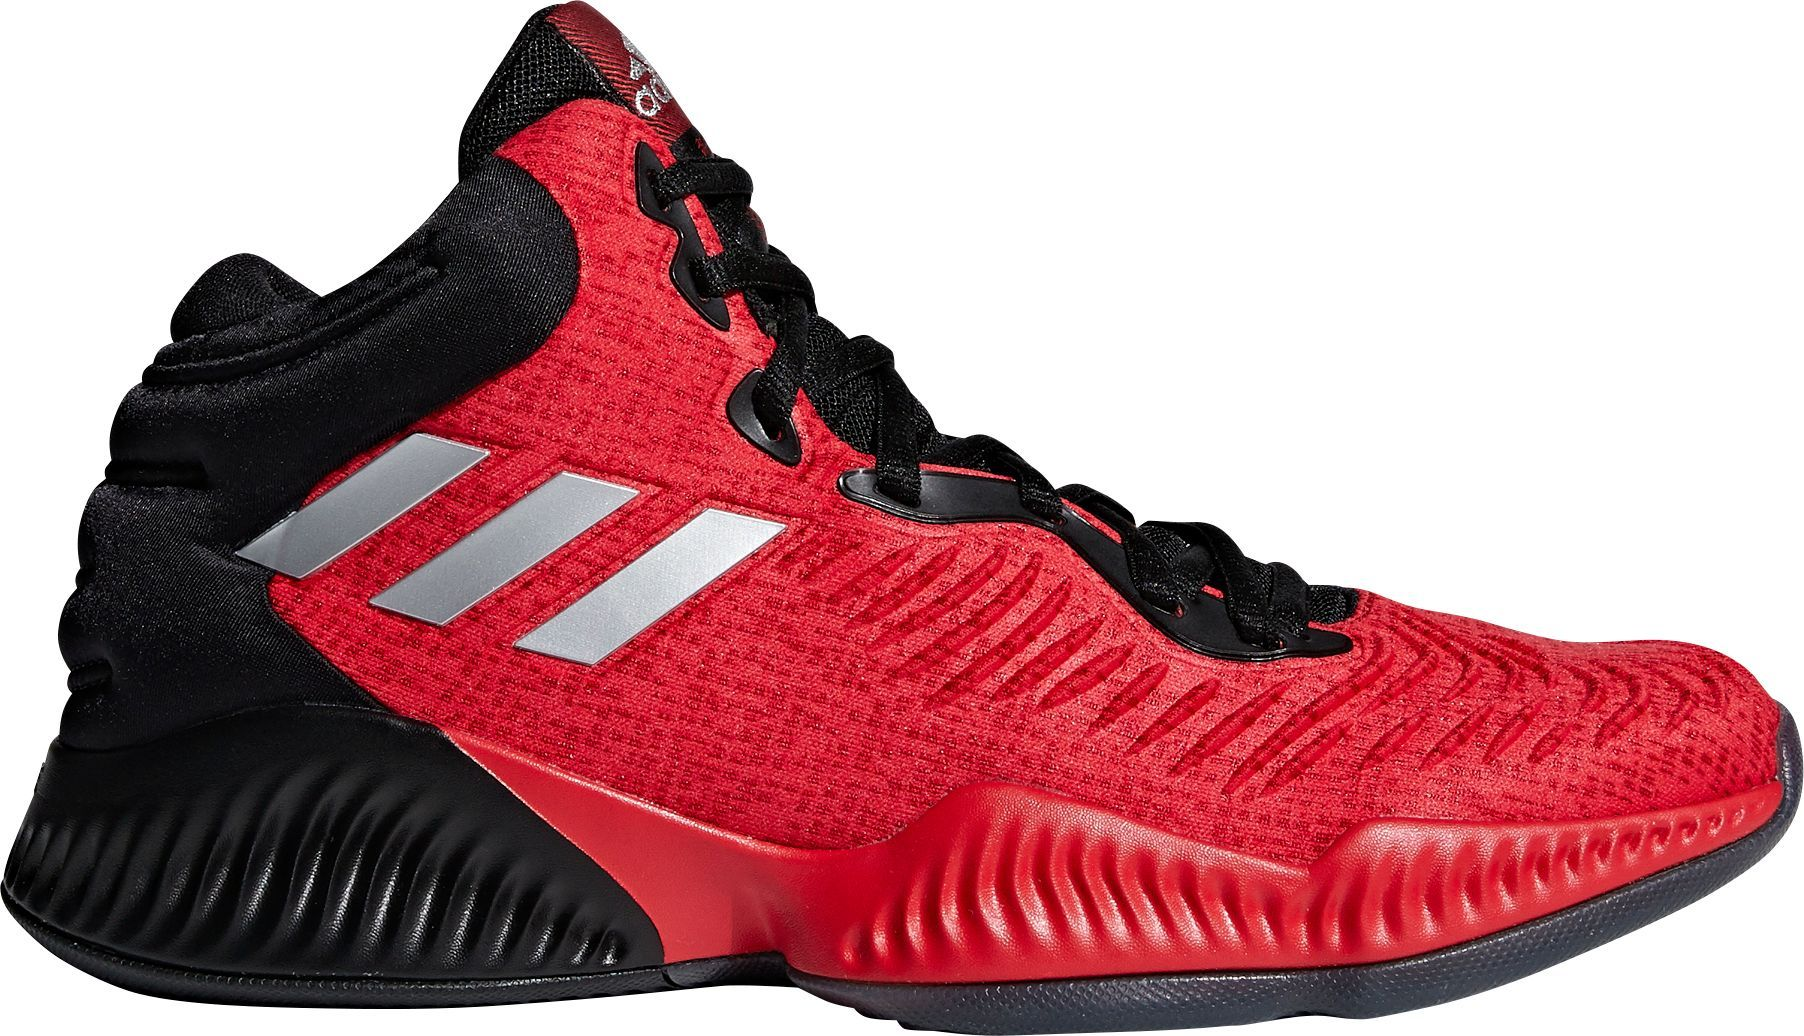 63bcf3559 adidas Men s Mad Bounce 2018 Basketball Shoes